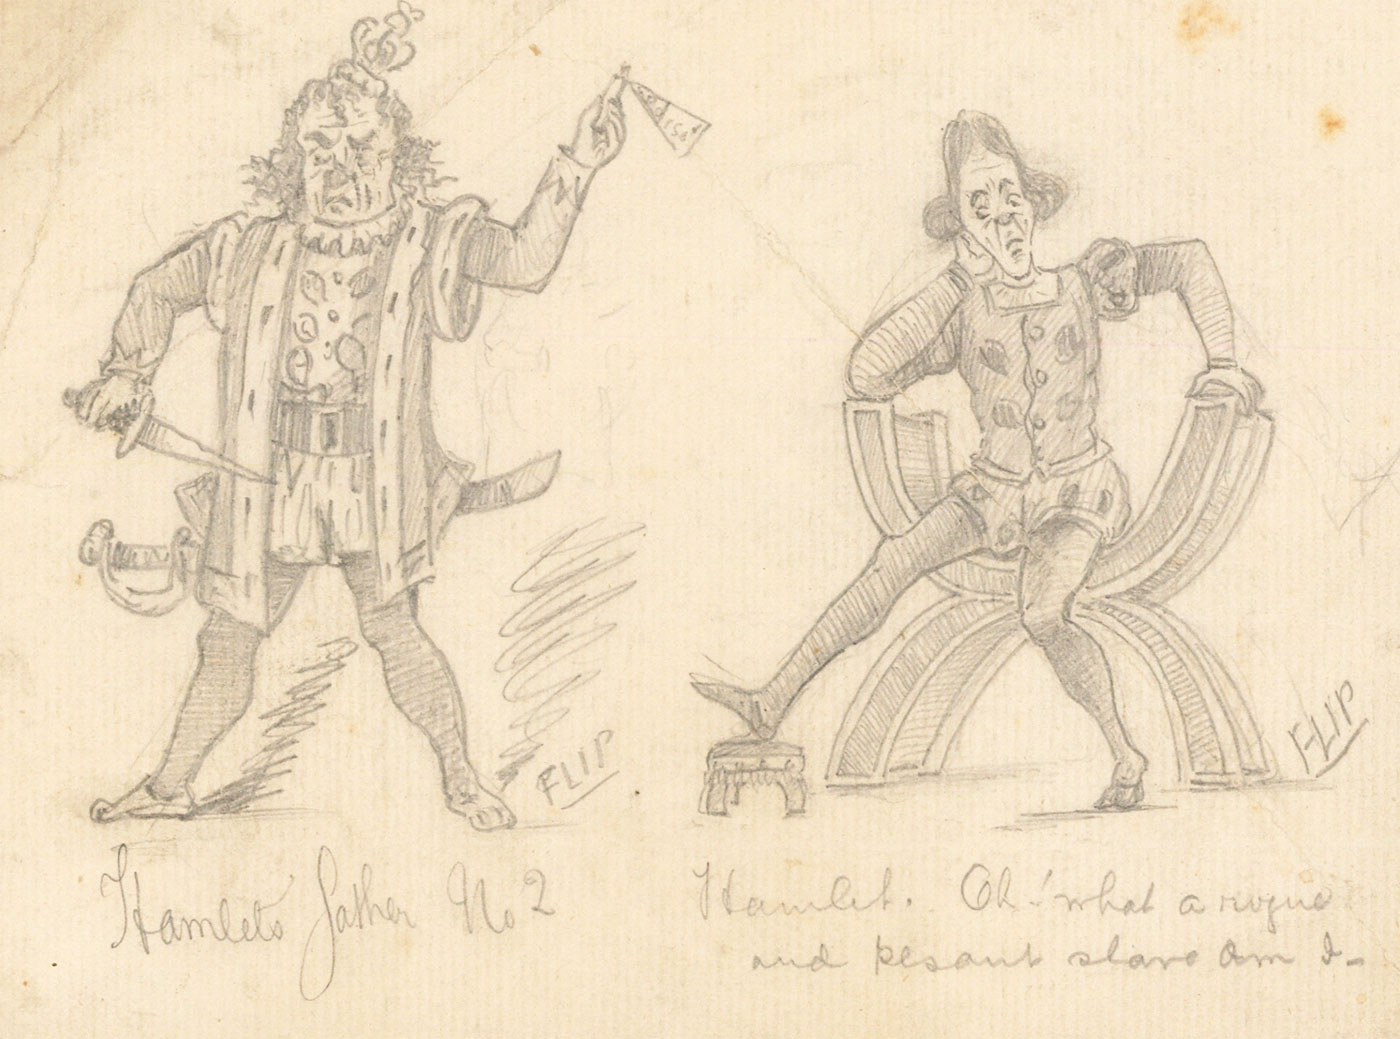 Flip - Early 20th Century Graphite Drawing, Costume Designs for Hamlet